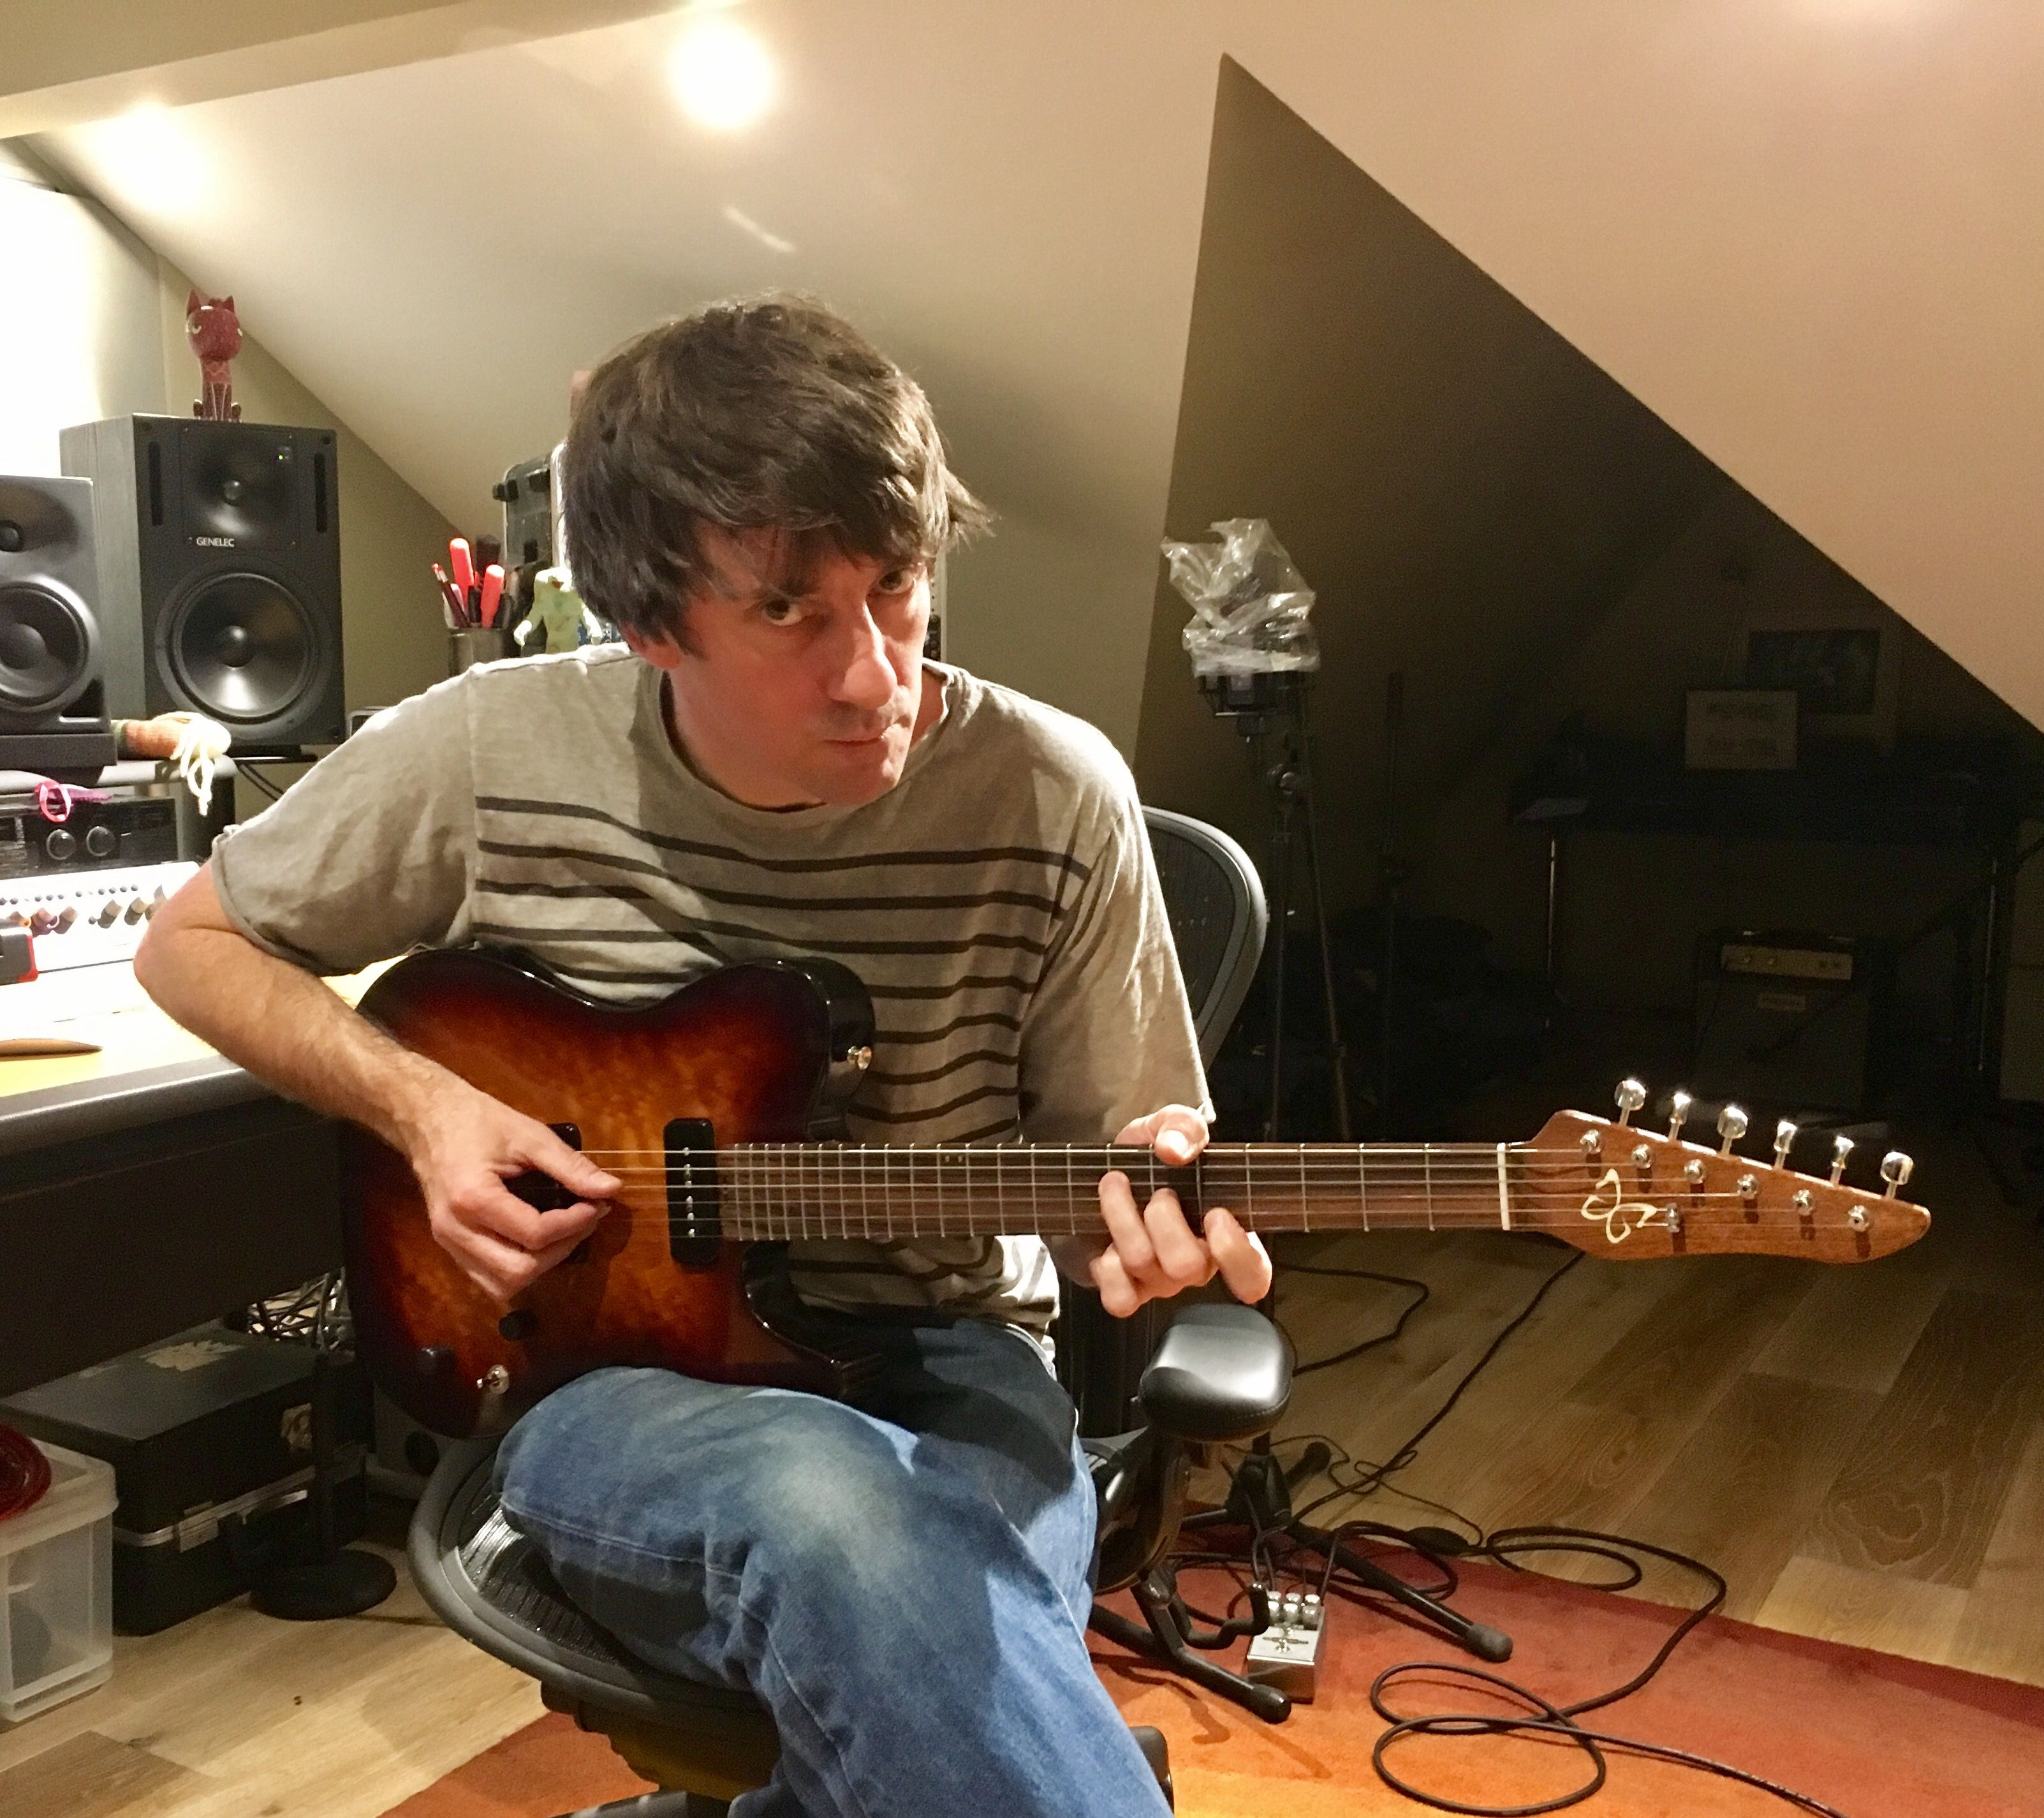 Graham Coxon with his Grayling guitar from Gray Guitars - Dec 9th, 2016